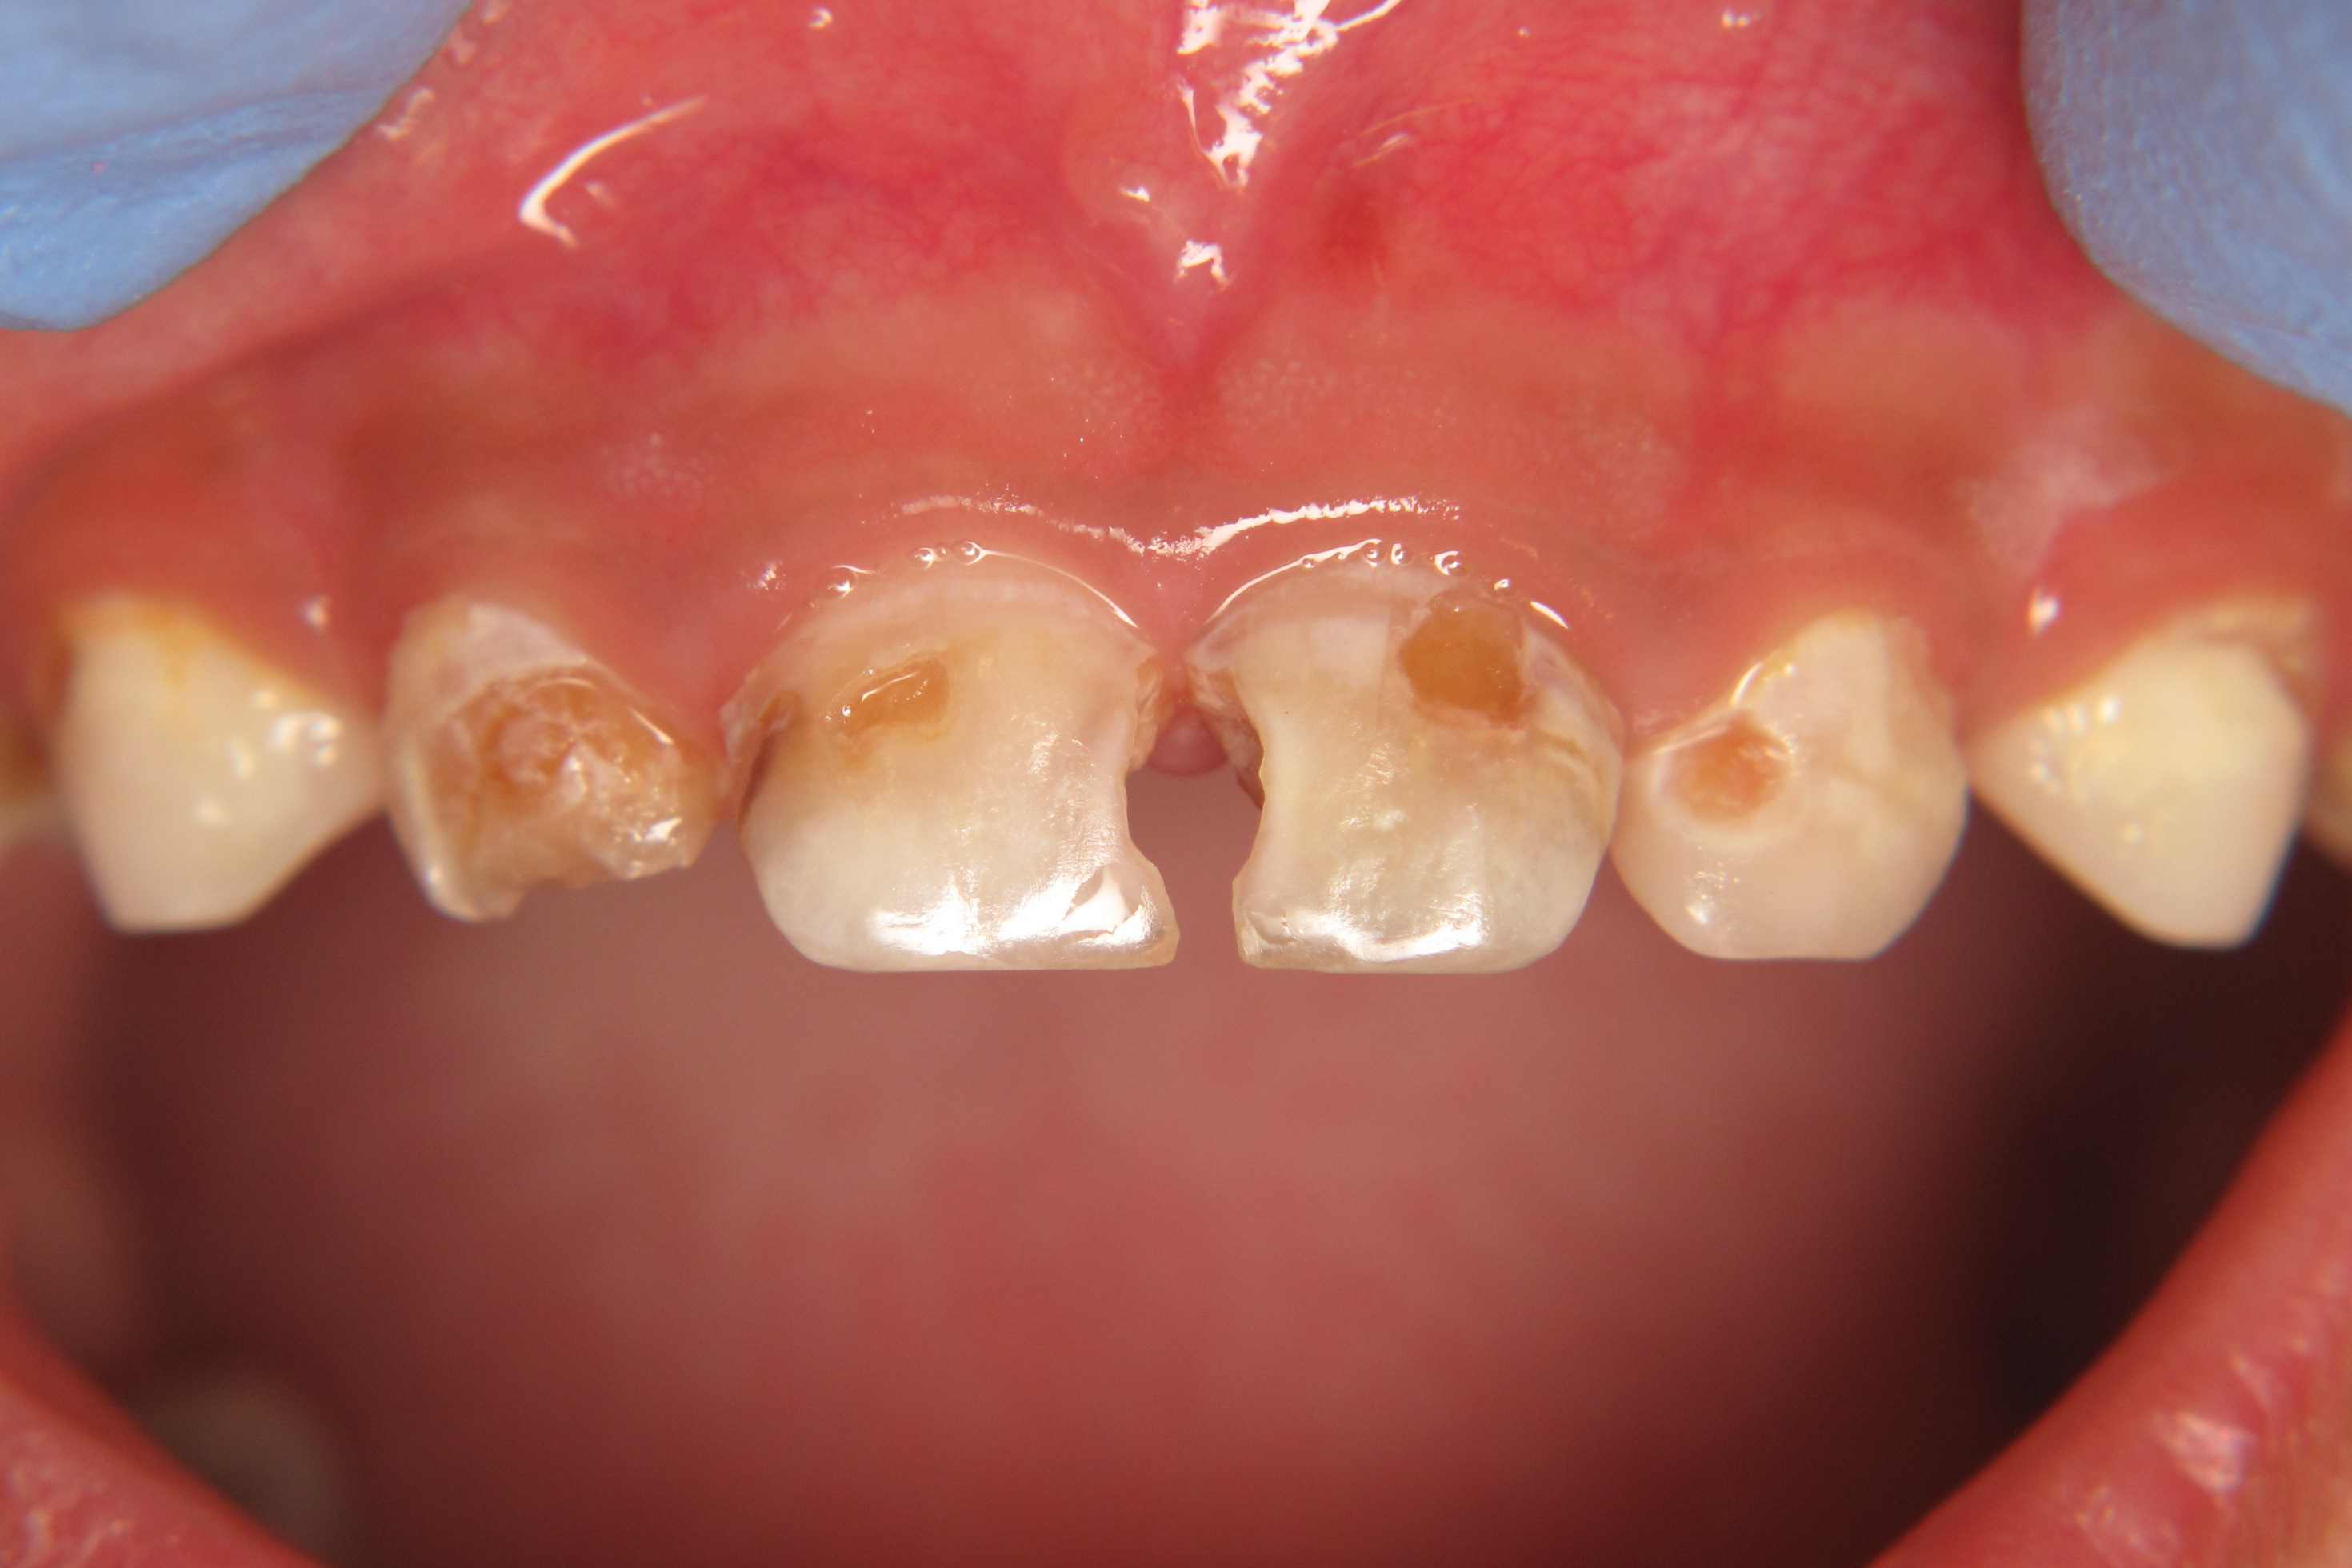 Figure 5.  Severe dental disease